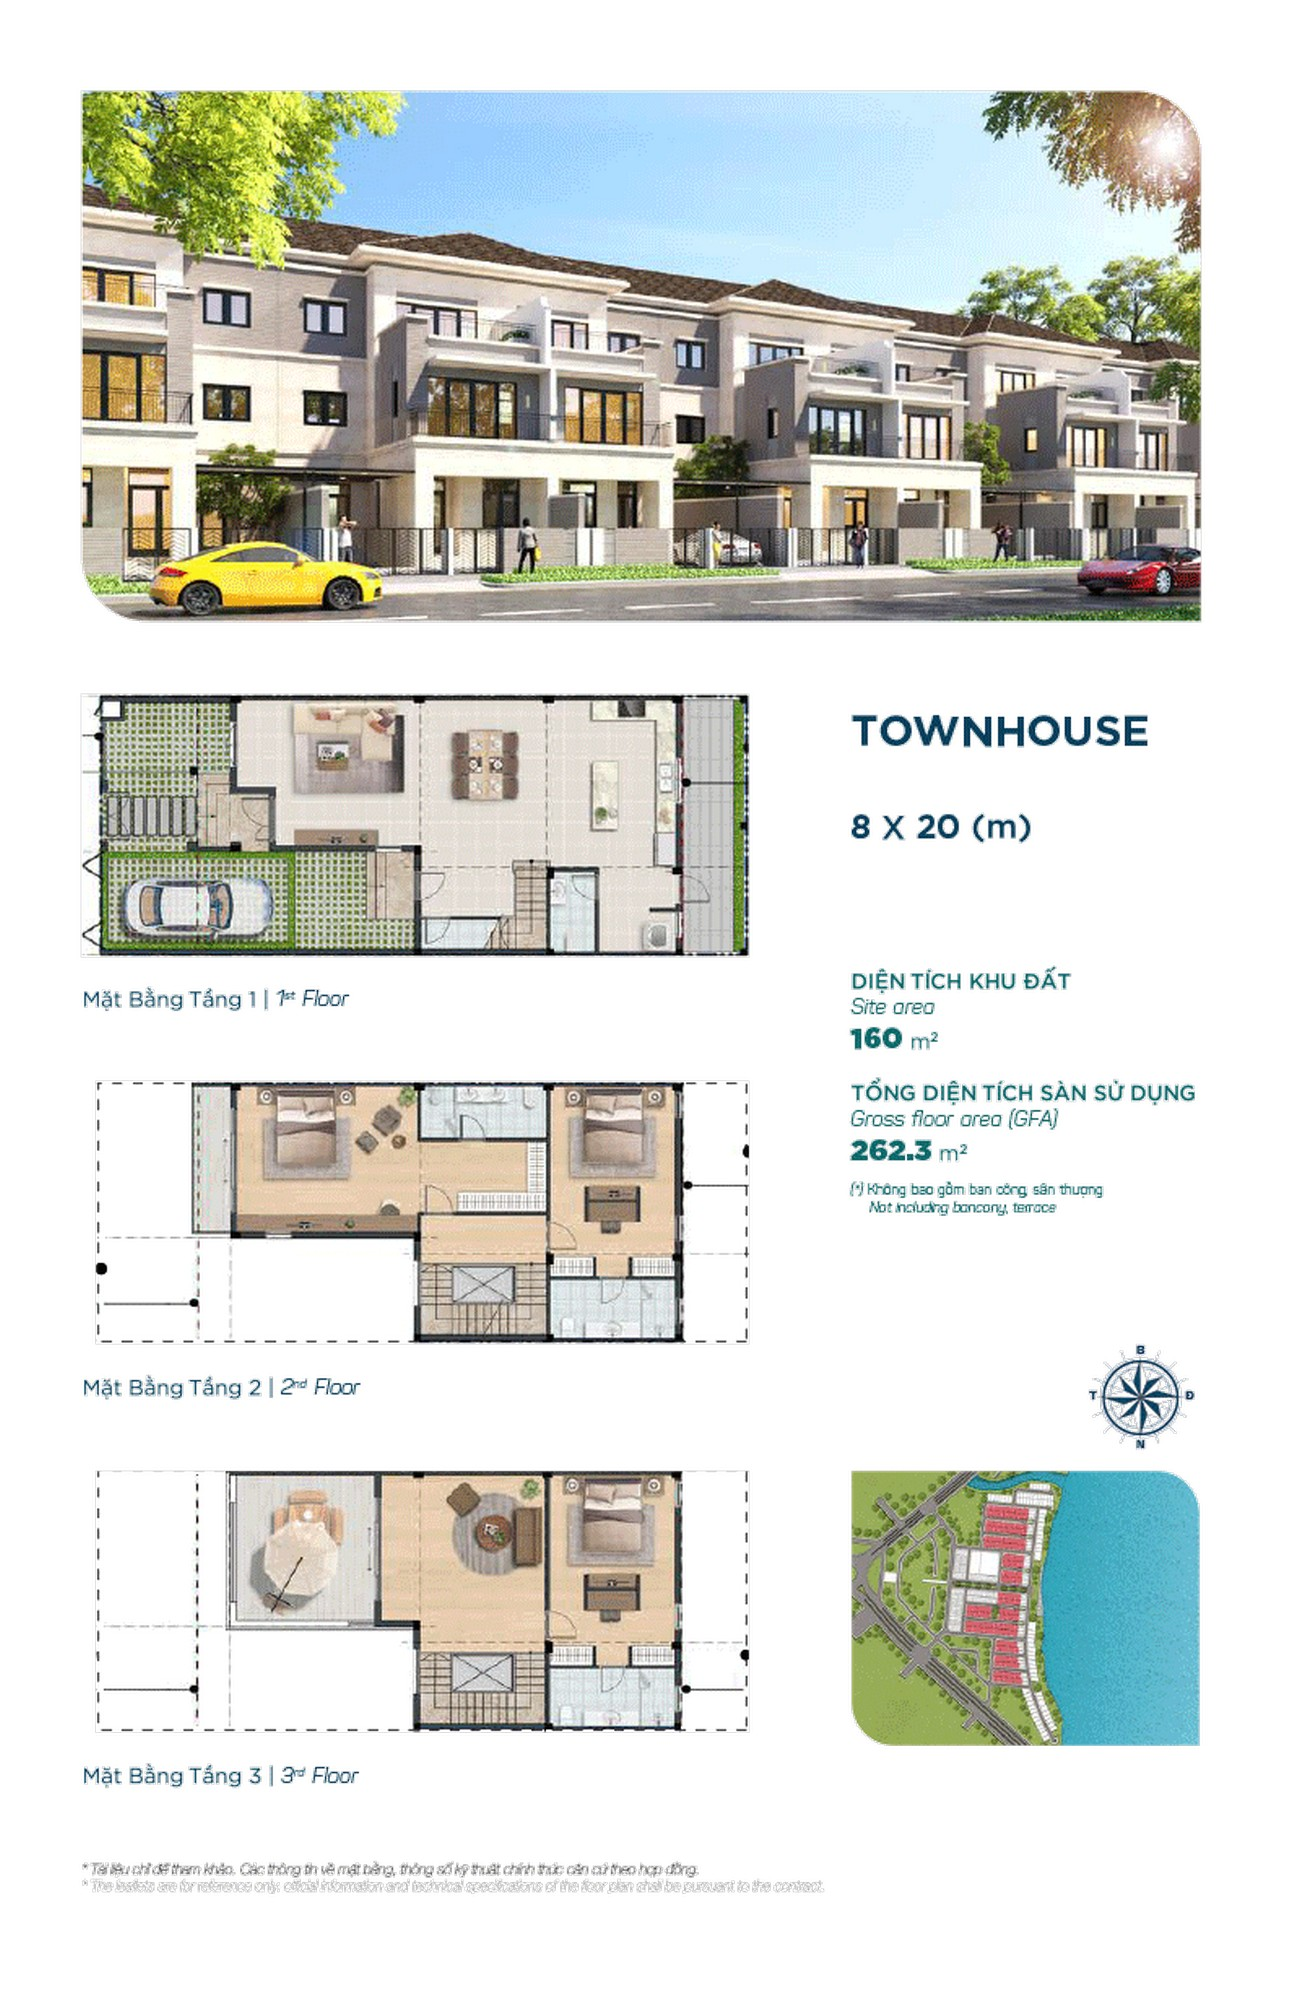 Townhouse The Elite 8x20m - Dự án Aqua City The Elite